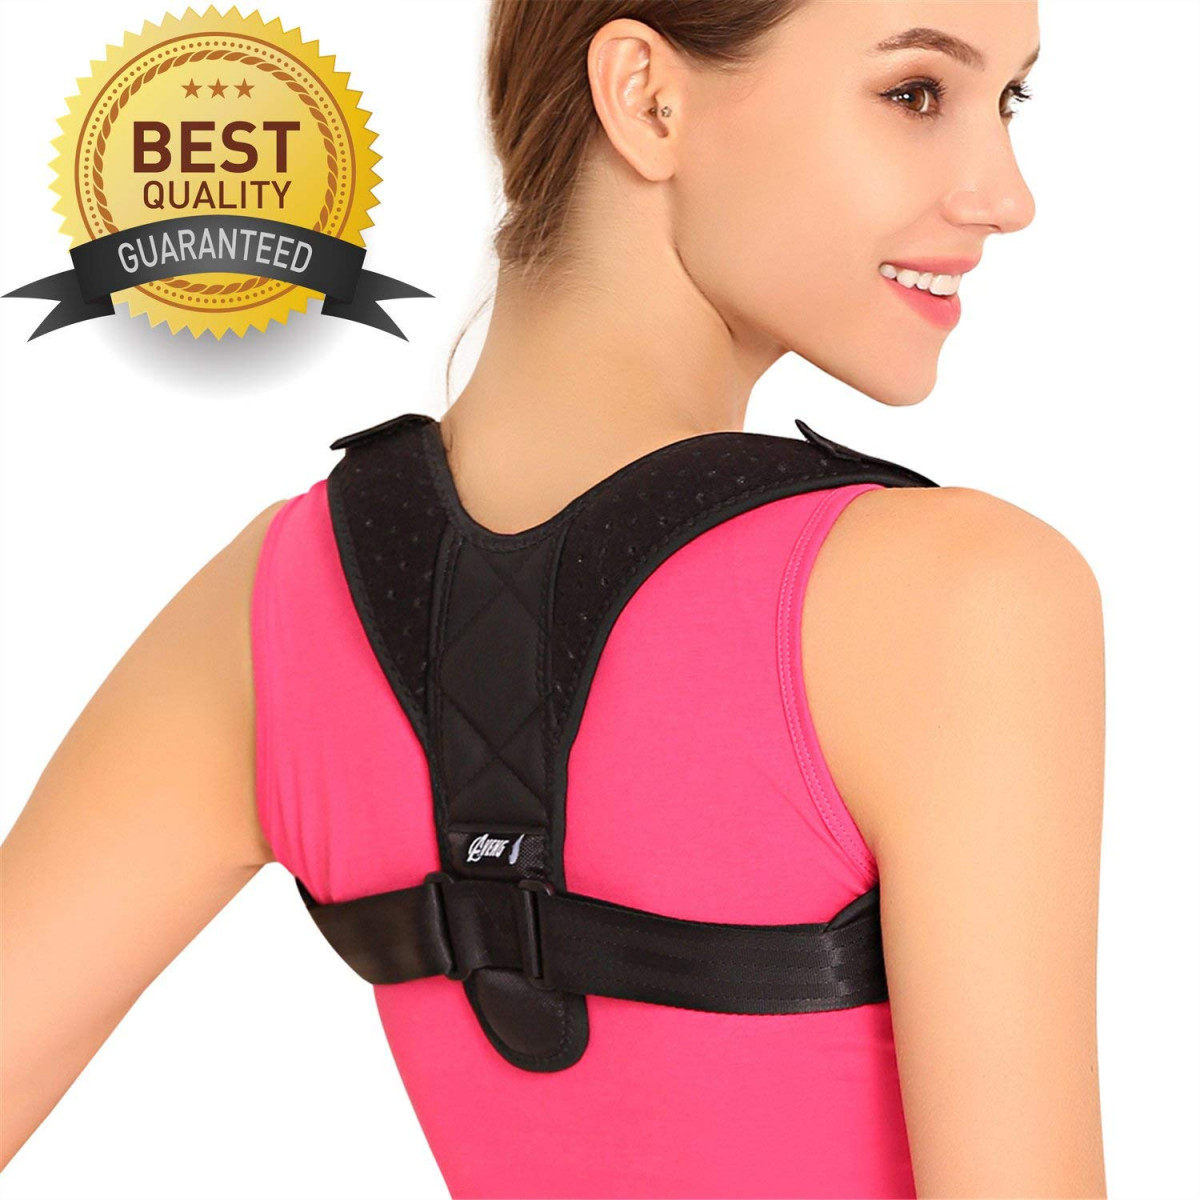 dff6306206f6 Posture Corrector for Women Men - Neck Pain Relief Upper Back Brace  Shoulder Posture Corrector Men Women Under Clothes Bra Posture Brace  Support Back ...